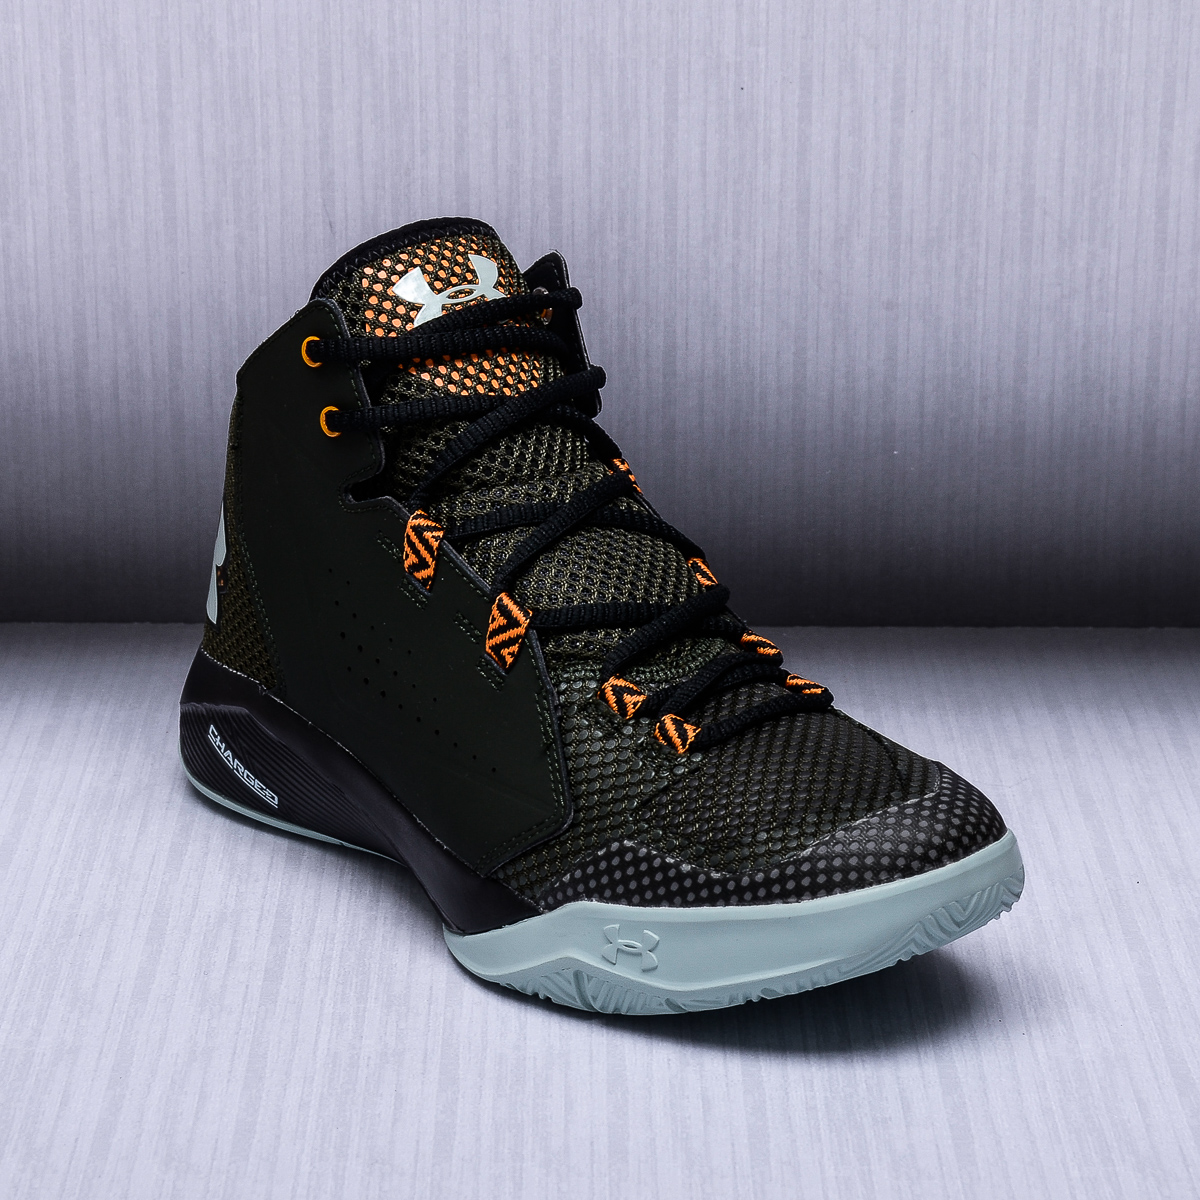 8da7497c7971 under armour torch shoes Under Armour Torch Fade 1274423 357 mens basketball  footwear